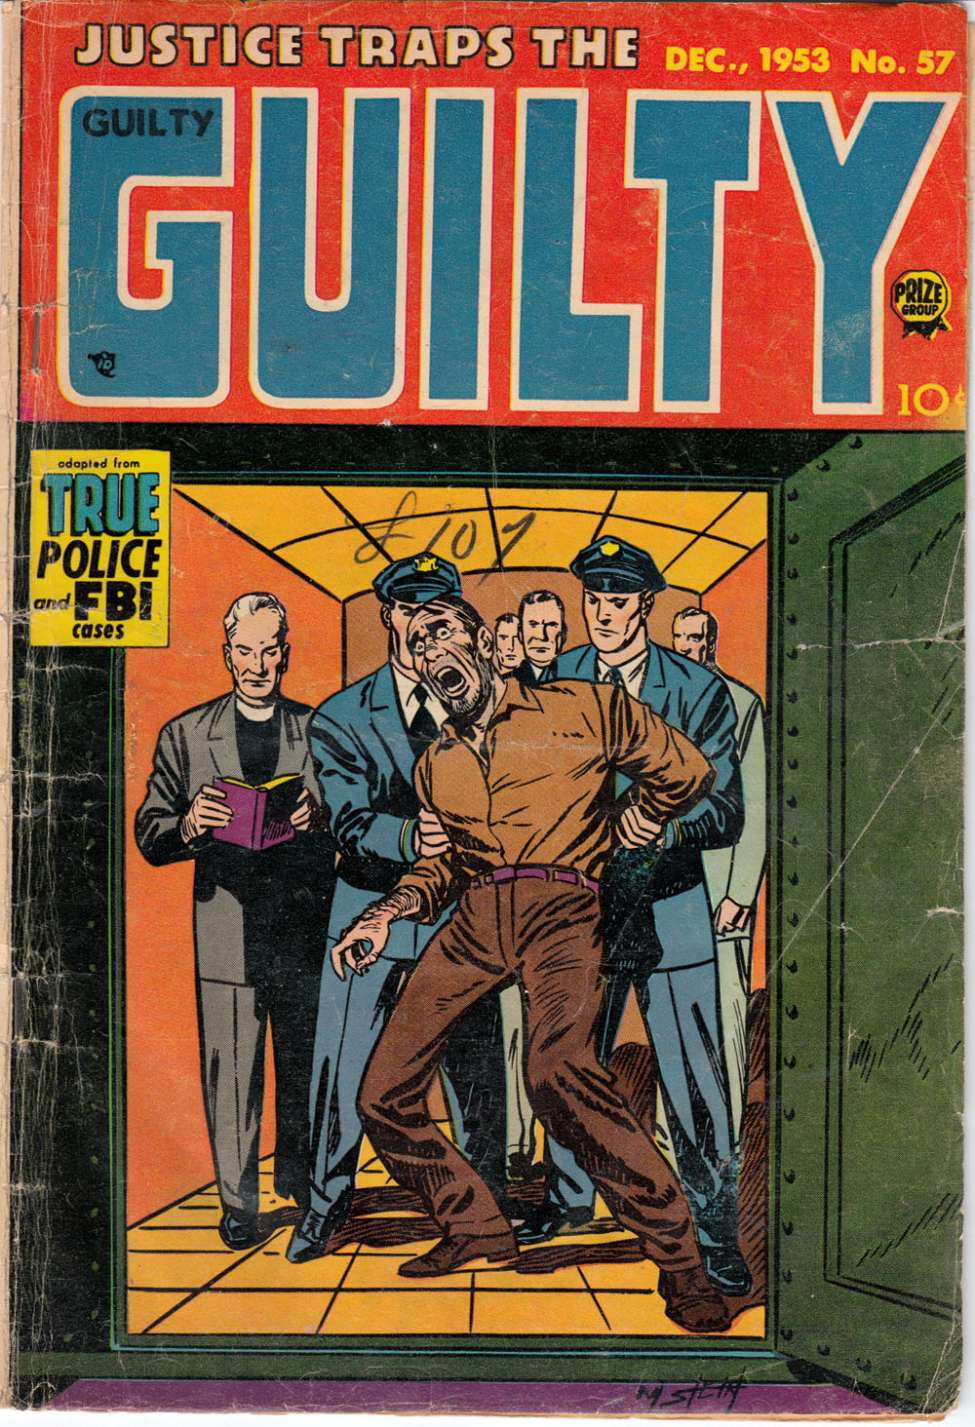 Comic Book Cover For Justice Traps the Guilty v7 3 (57)